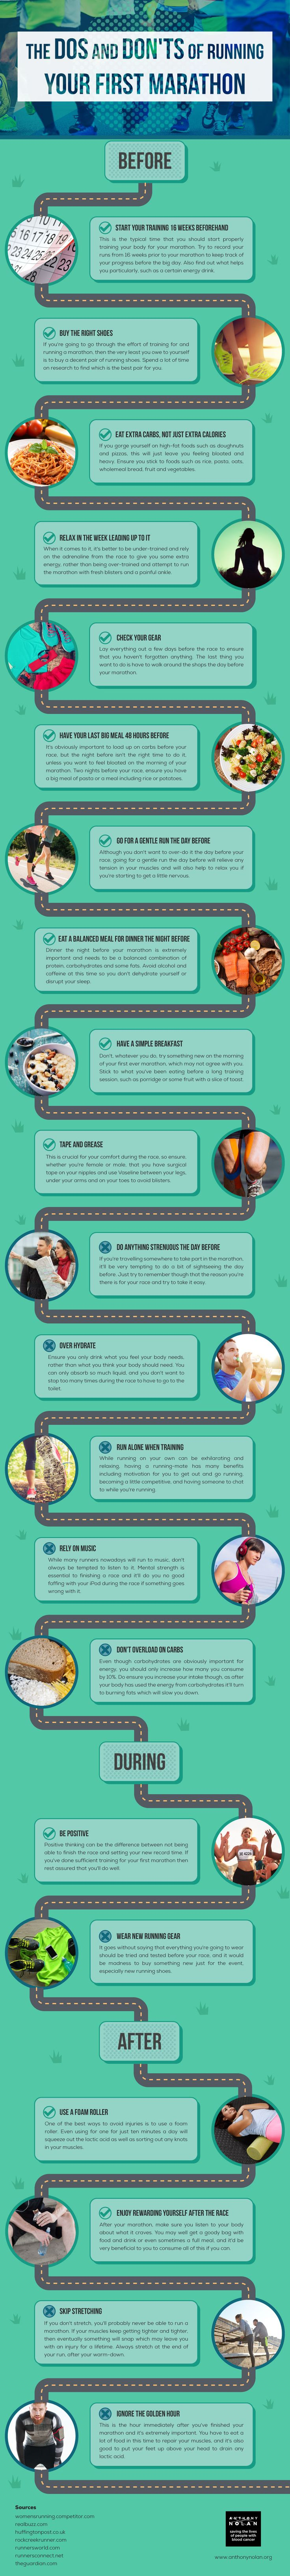 Marathons are already intimidating, so the more you know about training, preparation, and what to do after the race the better. If you want to run a marathon, but you're feeling lost, this visual guide can help get you started.